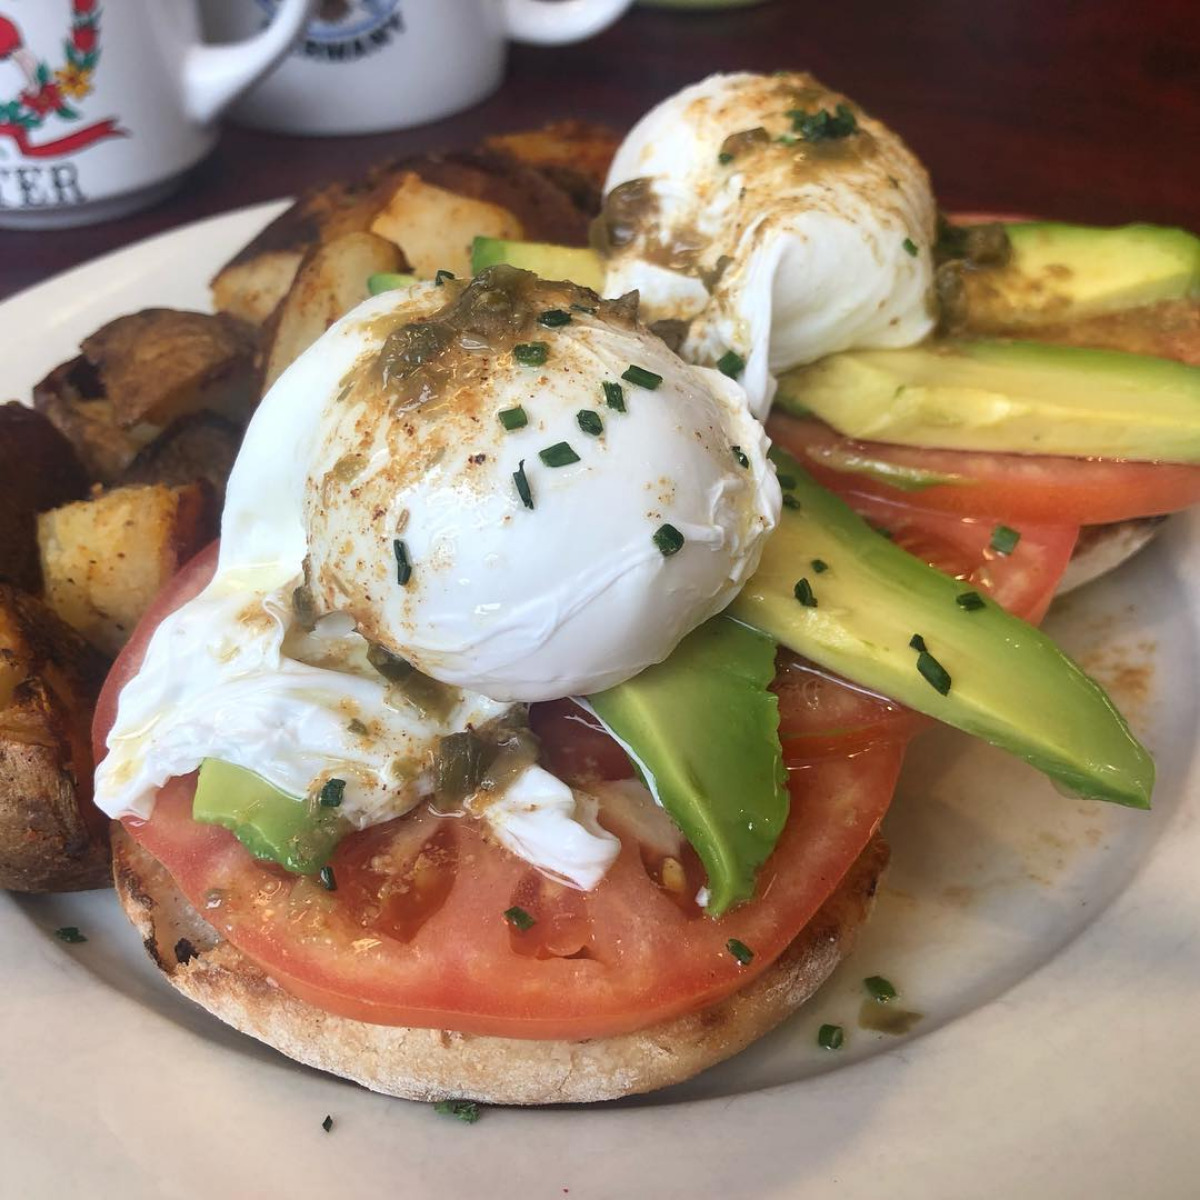 Capote Benedict - Poached eggs on top of Avocado & Tomato, topped with a drizzle of lemon-caper brown butter